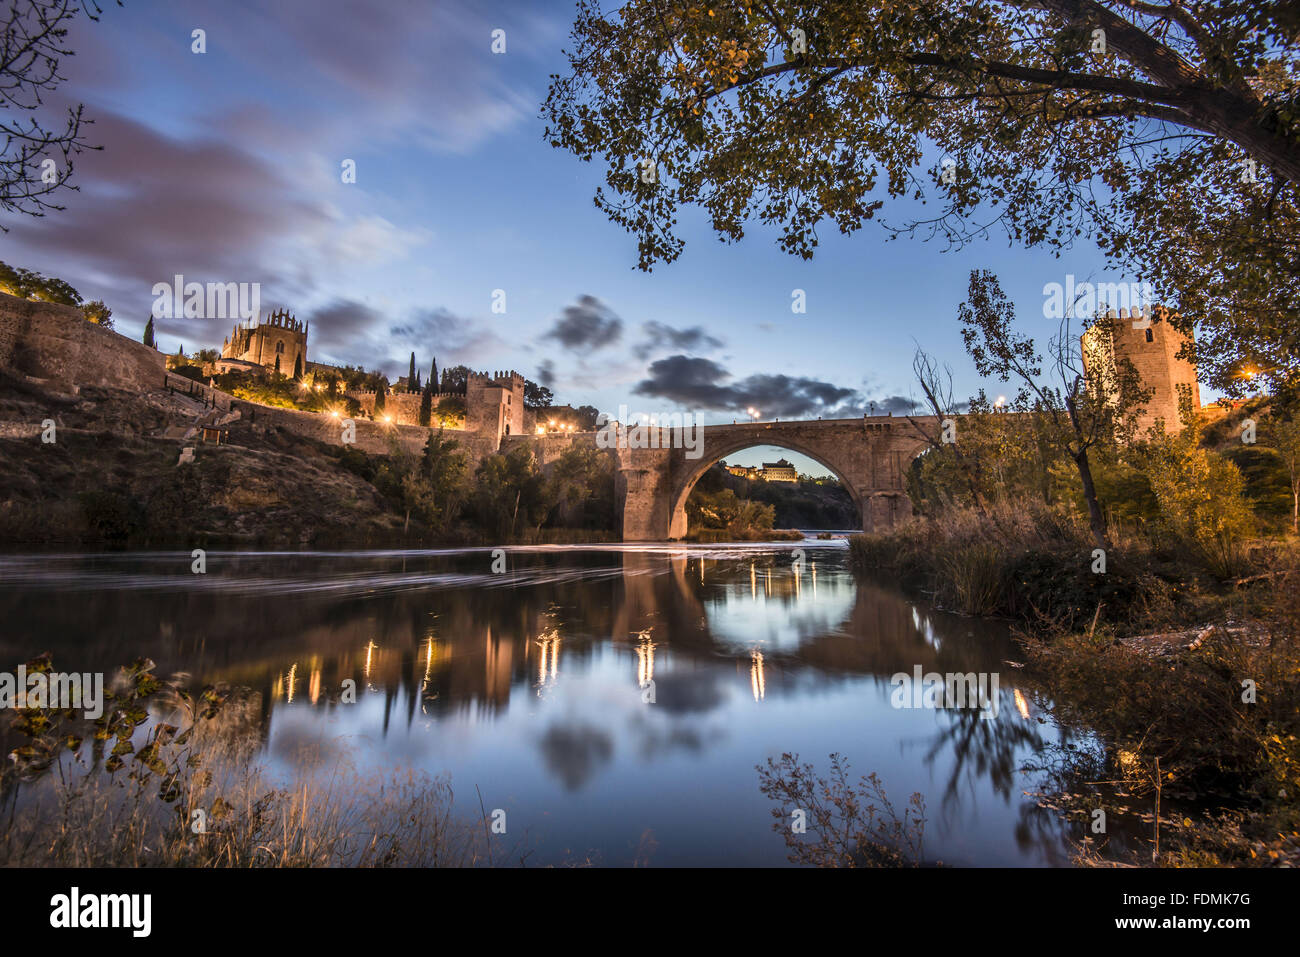 Puente de San Martin on the River Tajo / Tejo - Bridge XIV century gothic style - Stock Image